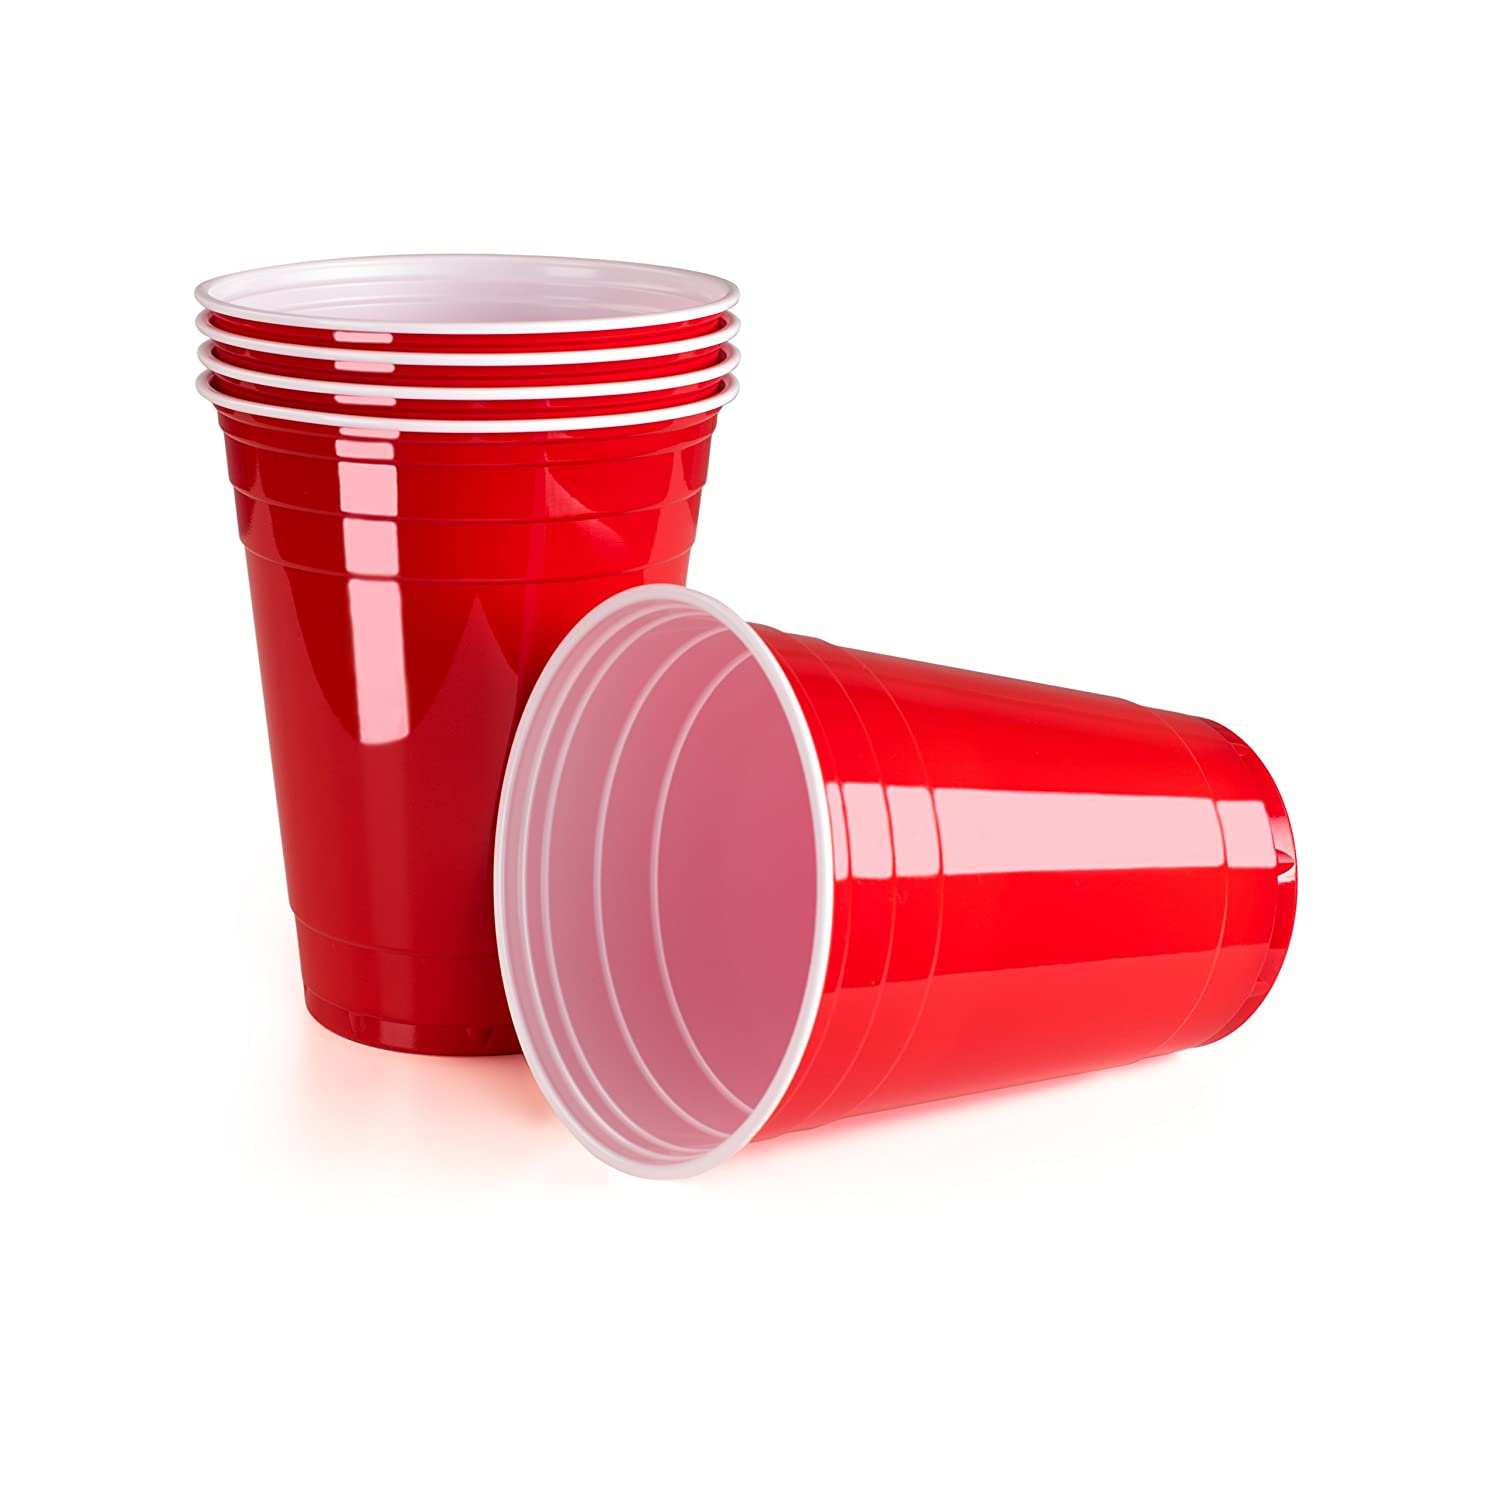 VIVALOO Red Plastic Party Cups, Red Cups, Red Plastic Cups, Red Party Cups (50) Everbrent